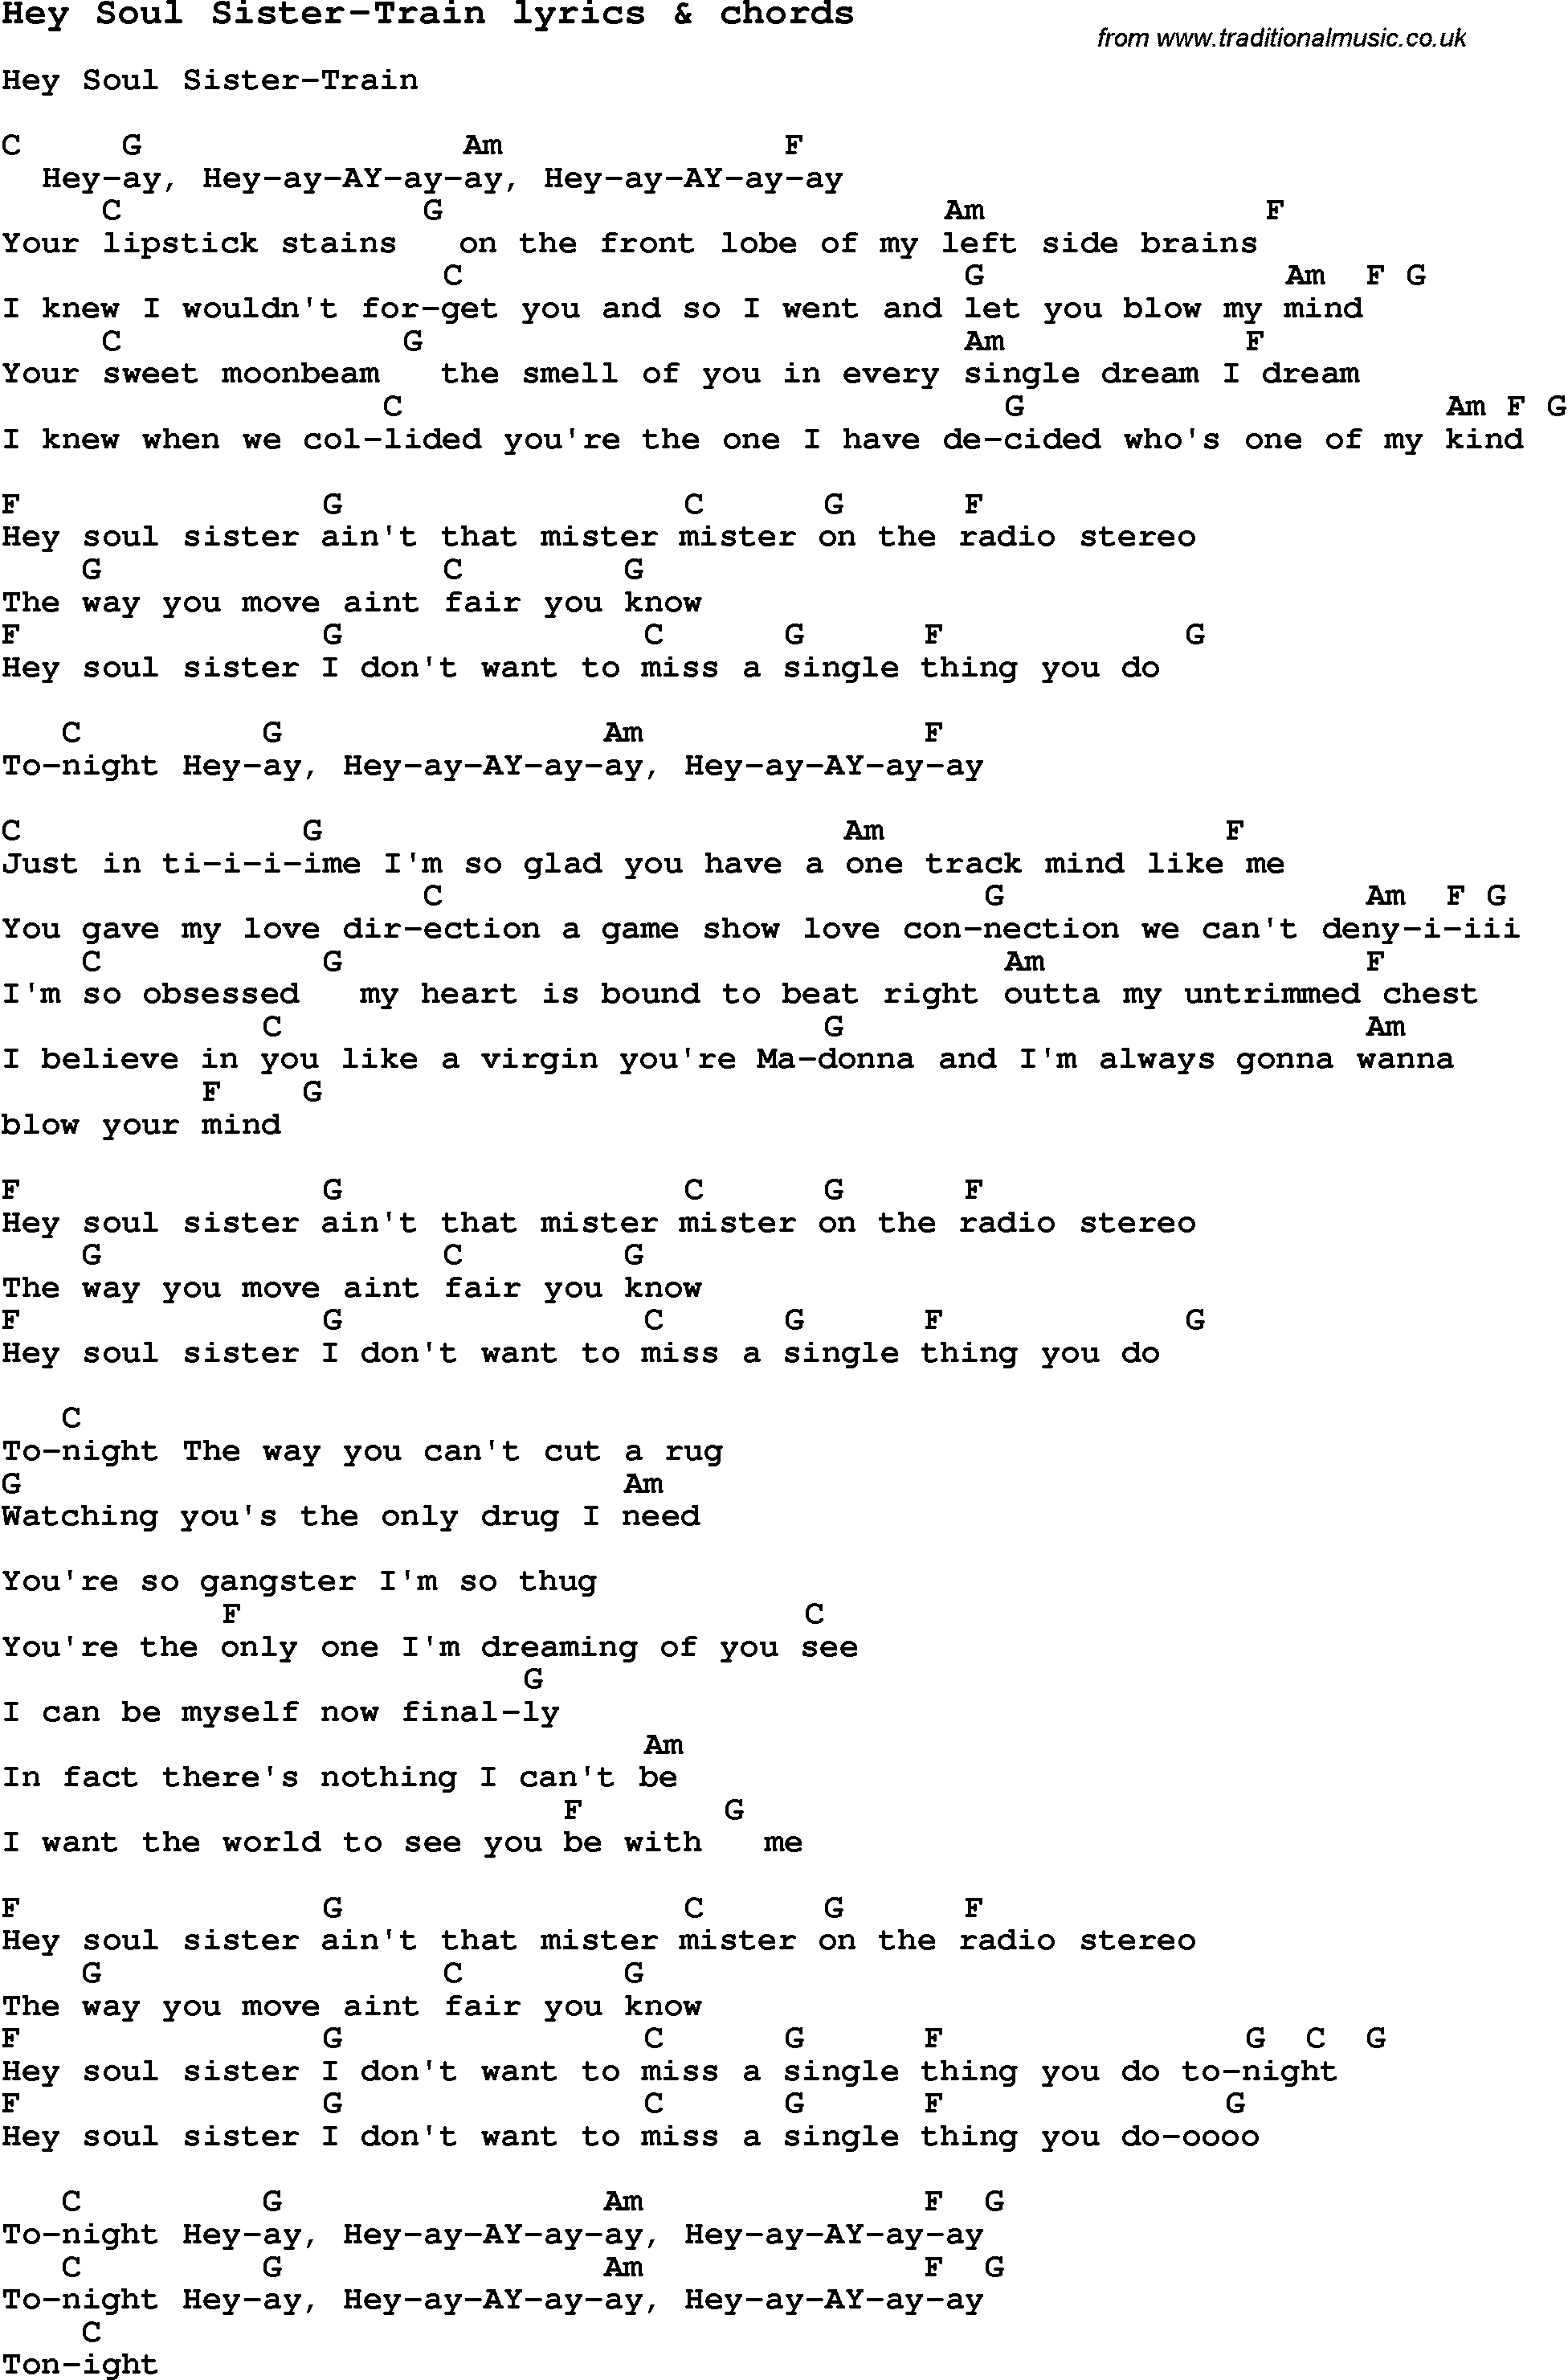 Love song lyrics for hey soul sister train with chords for love song lyrics for hey soul sister train with chords for ukulele guitar hexwebz Choice Image